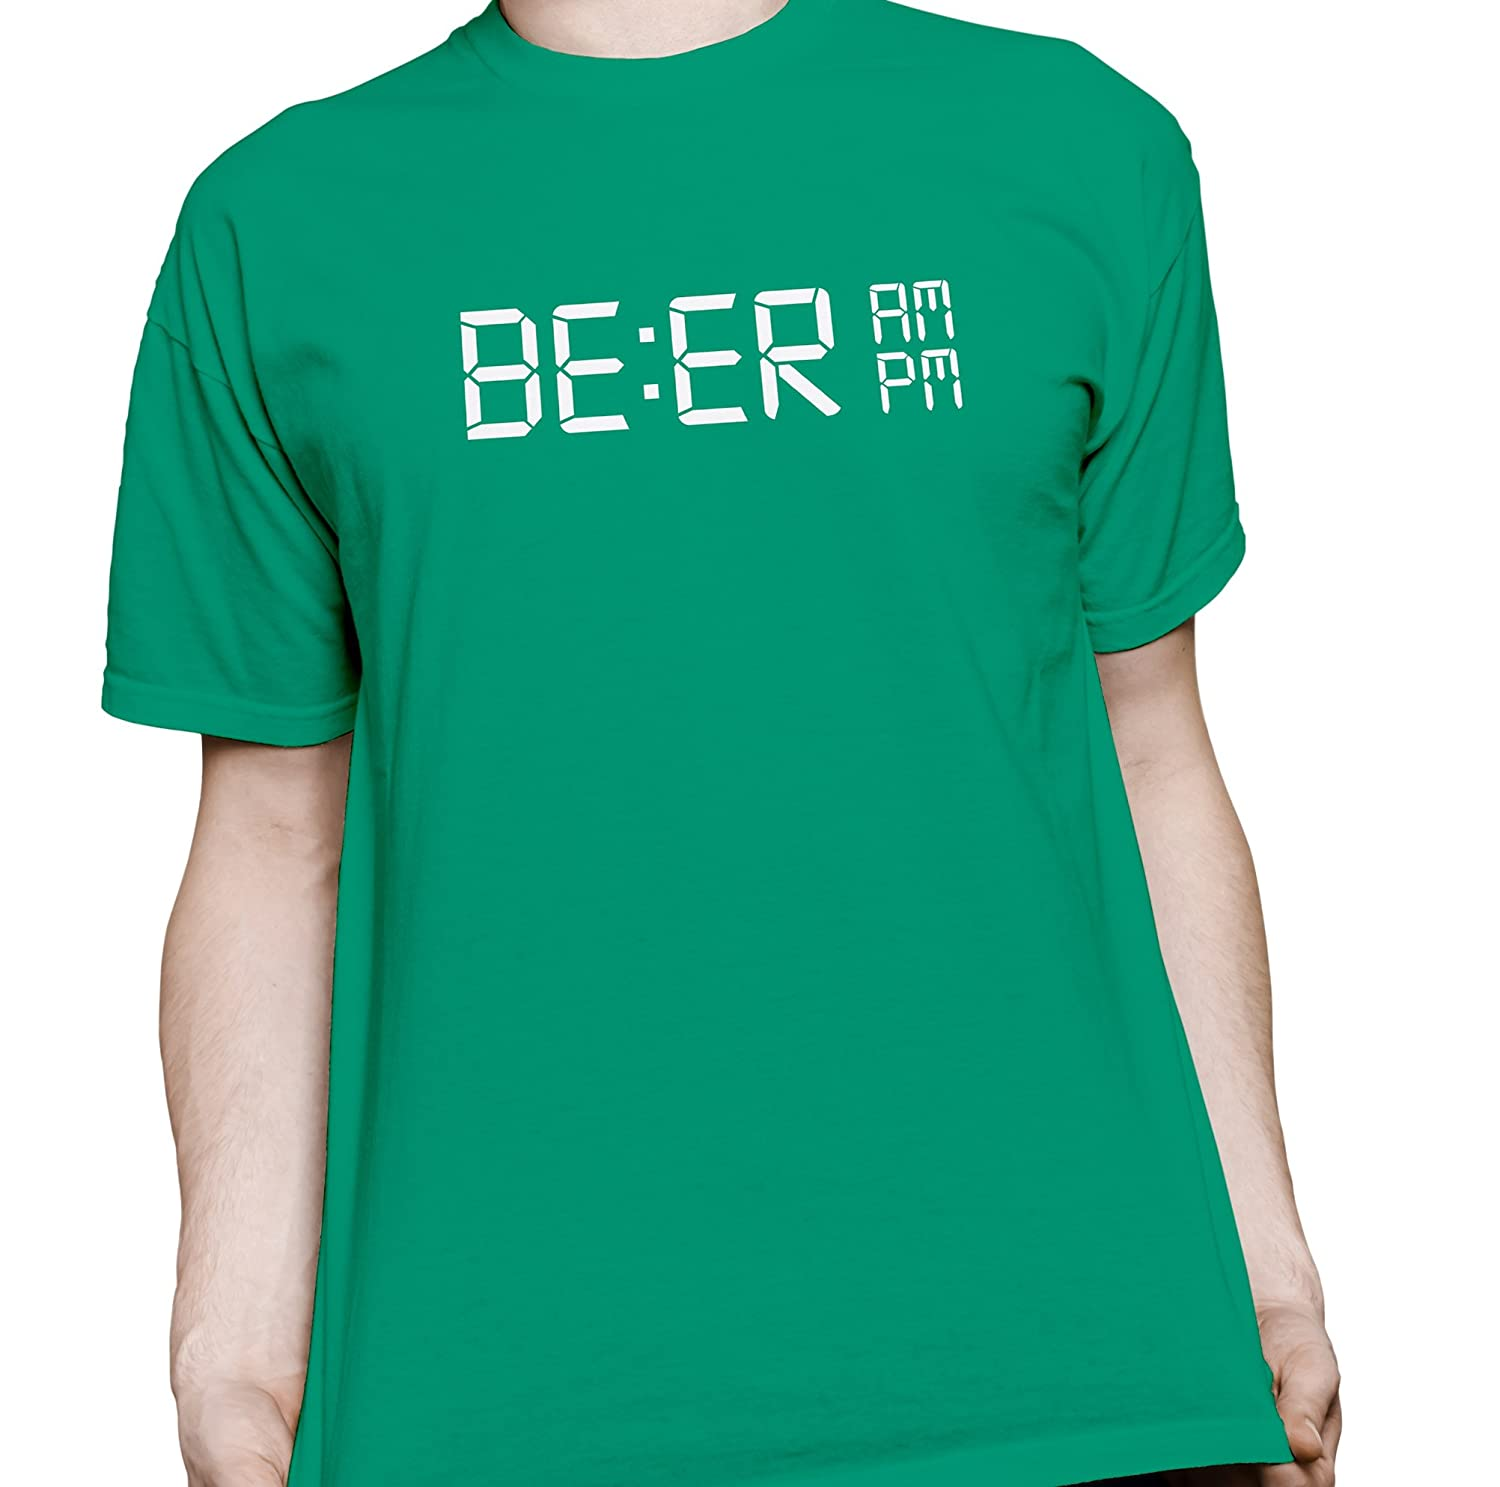 efb98a1931 Amazon.com: BE:ER O Clock - Funny Alarm Clock Beer Drinking Alcohol T-Shirt:  Clothing